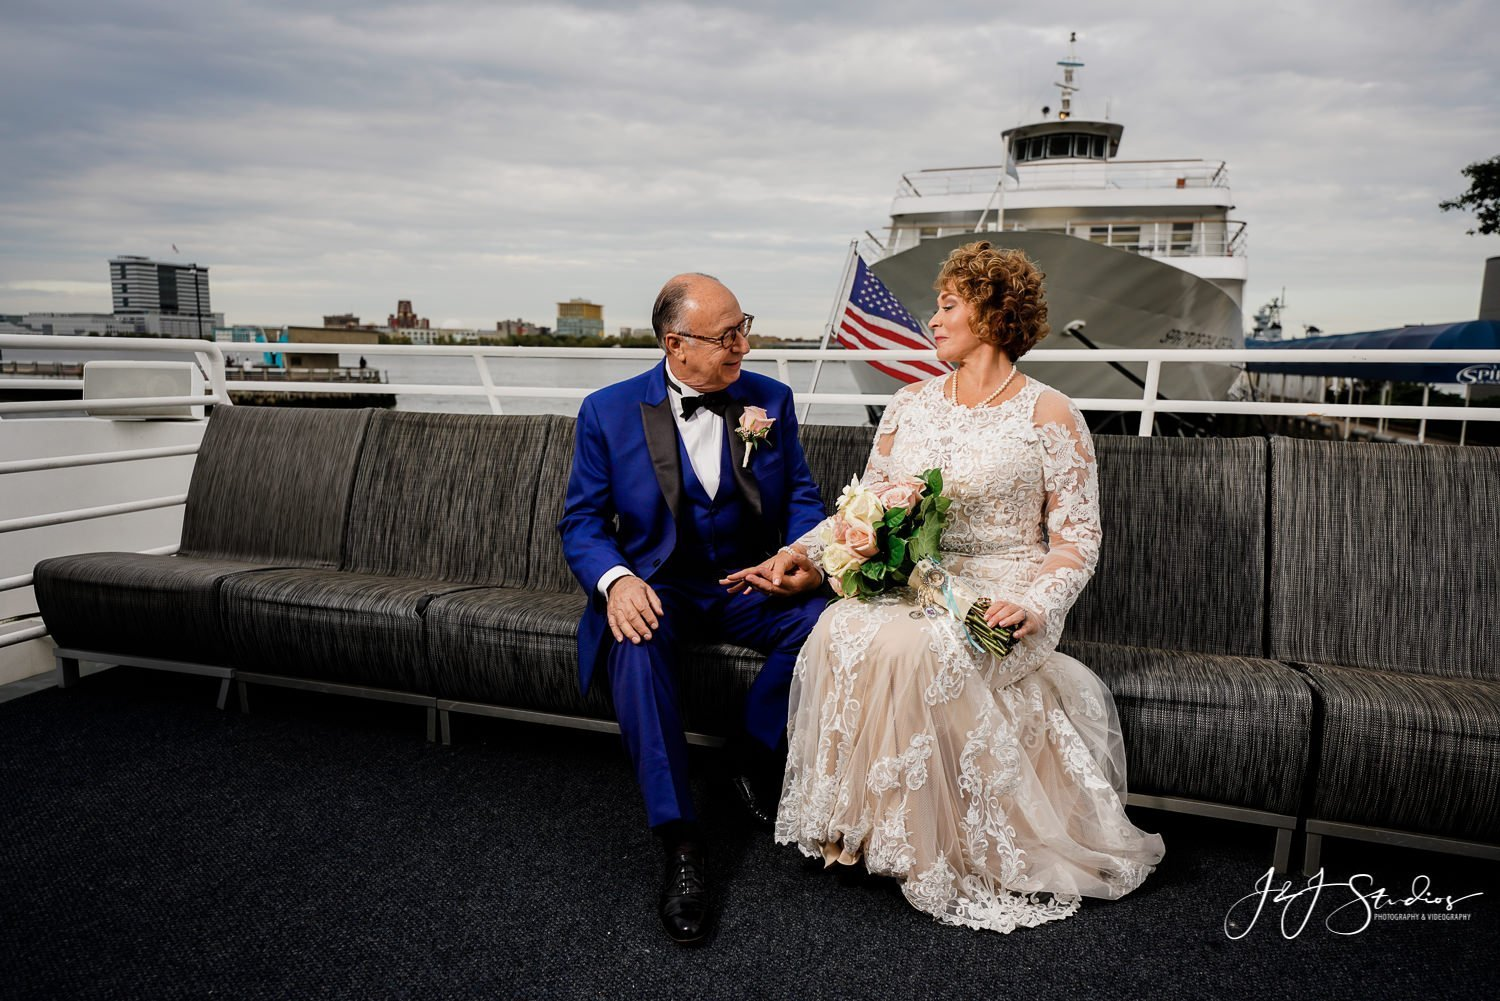 bride and groom on deck of freedom elite private yacht wedding